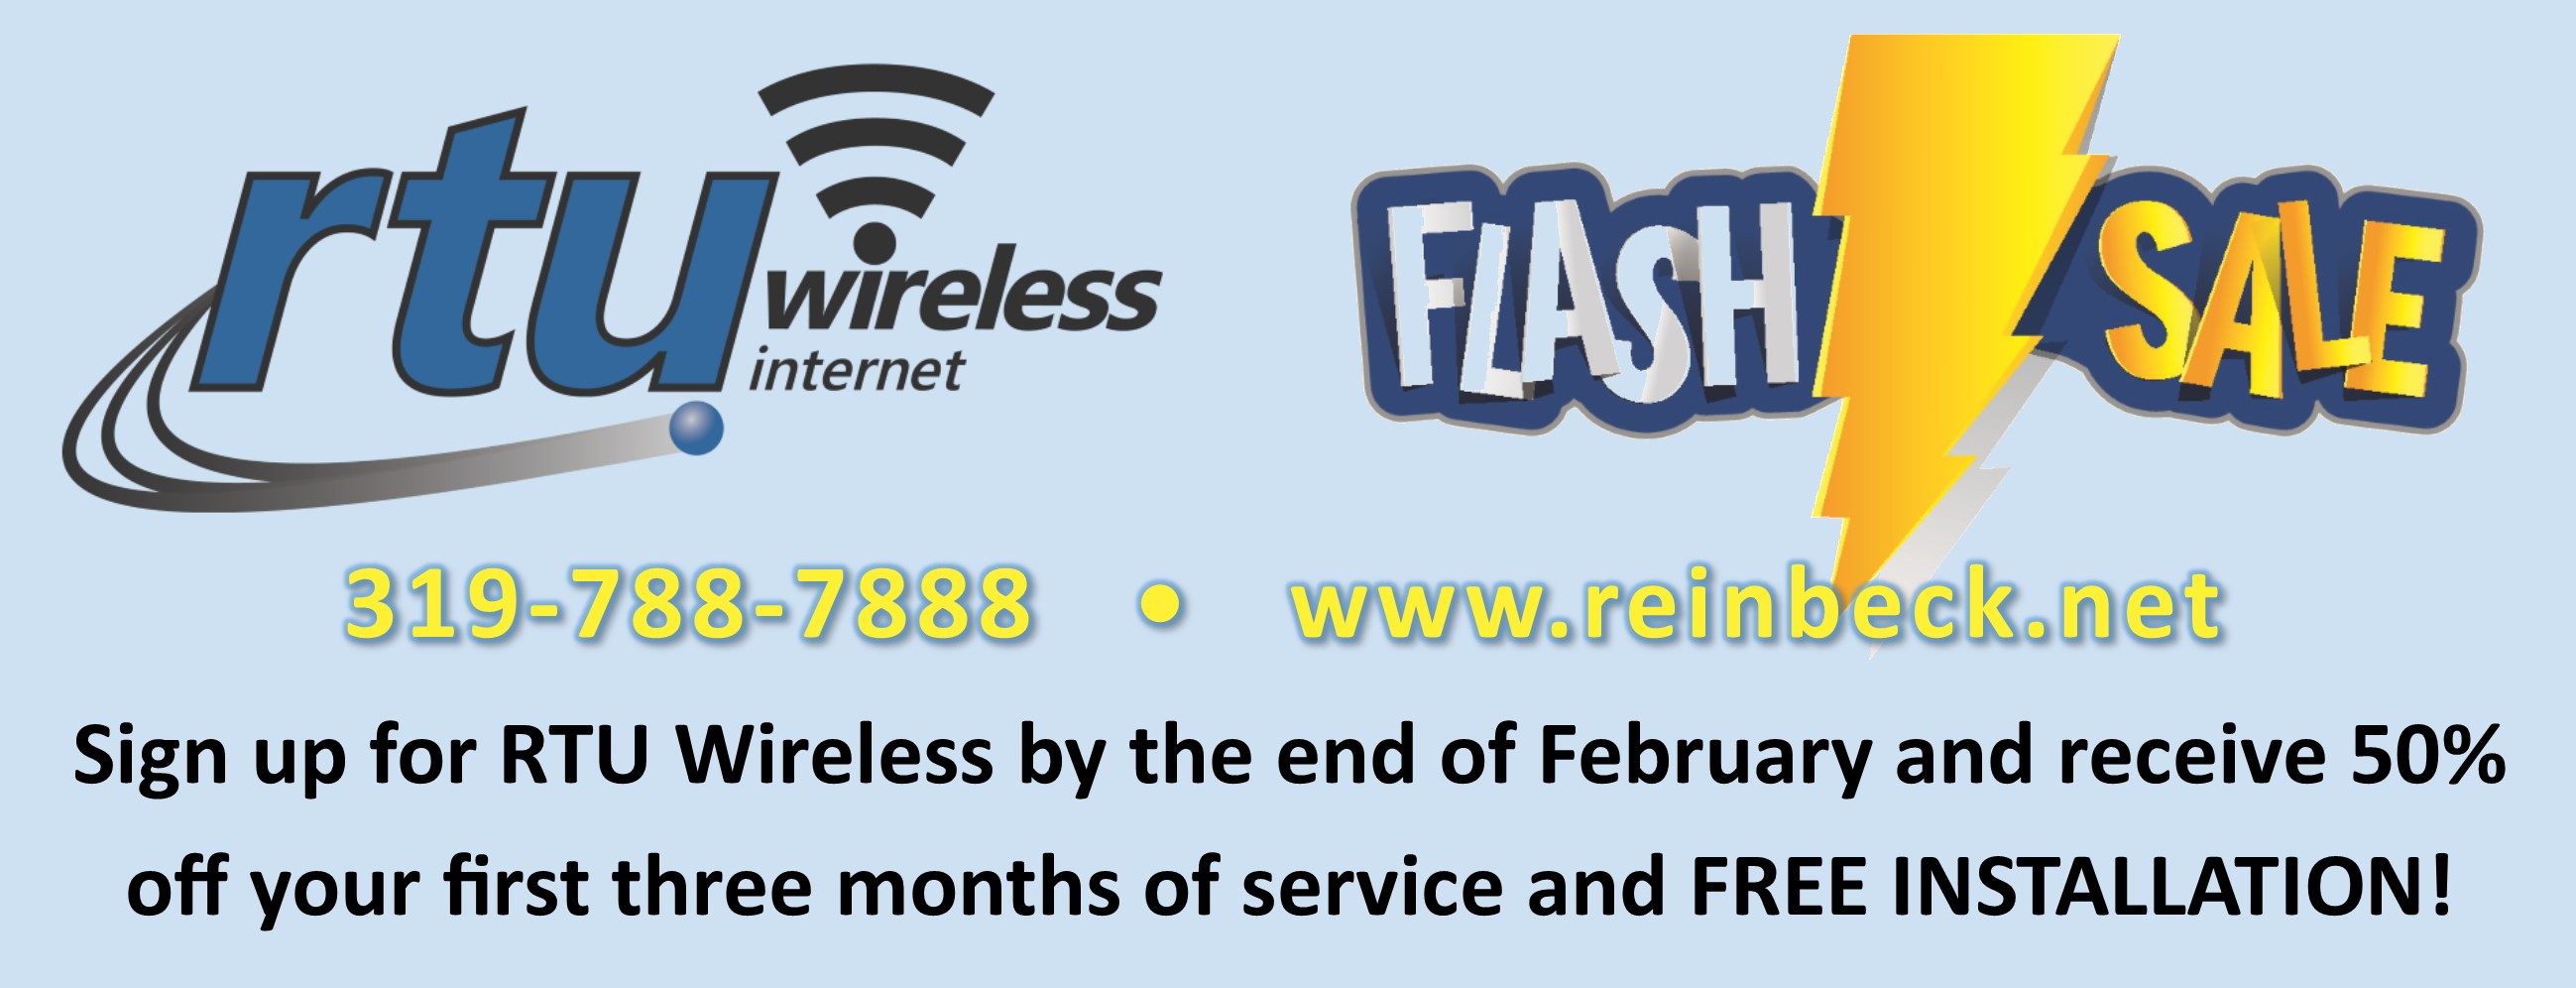 2018 02 15 Wireless Flash Sale Facebook header (1)